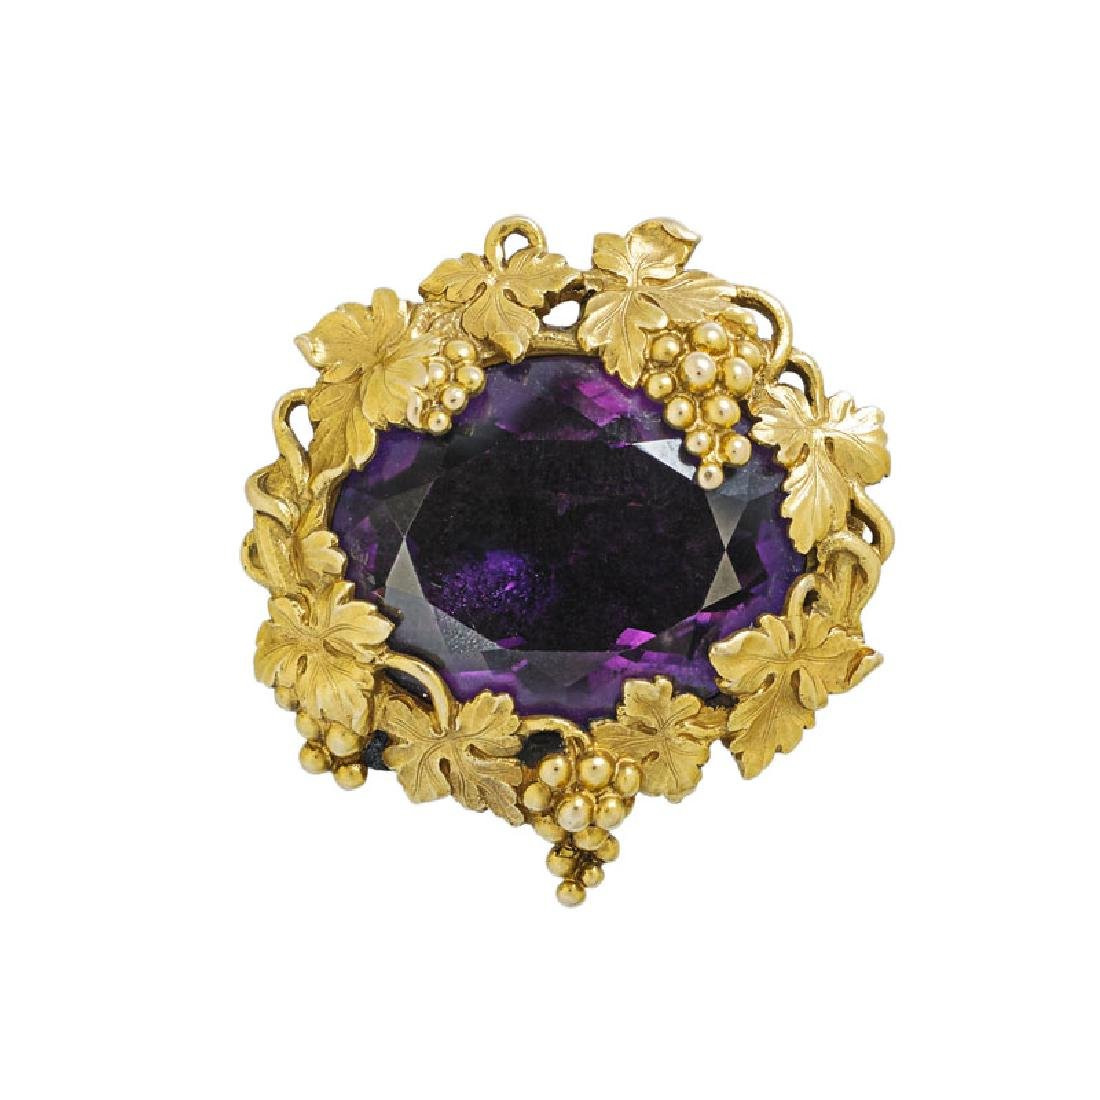 SCULPTED YELLOW GOLD GRAPEVINE & AMETHYST BROOCH